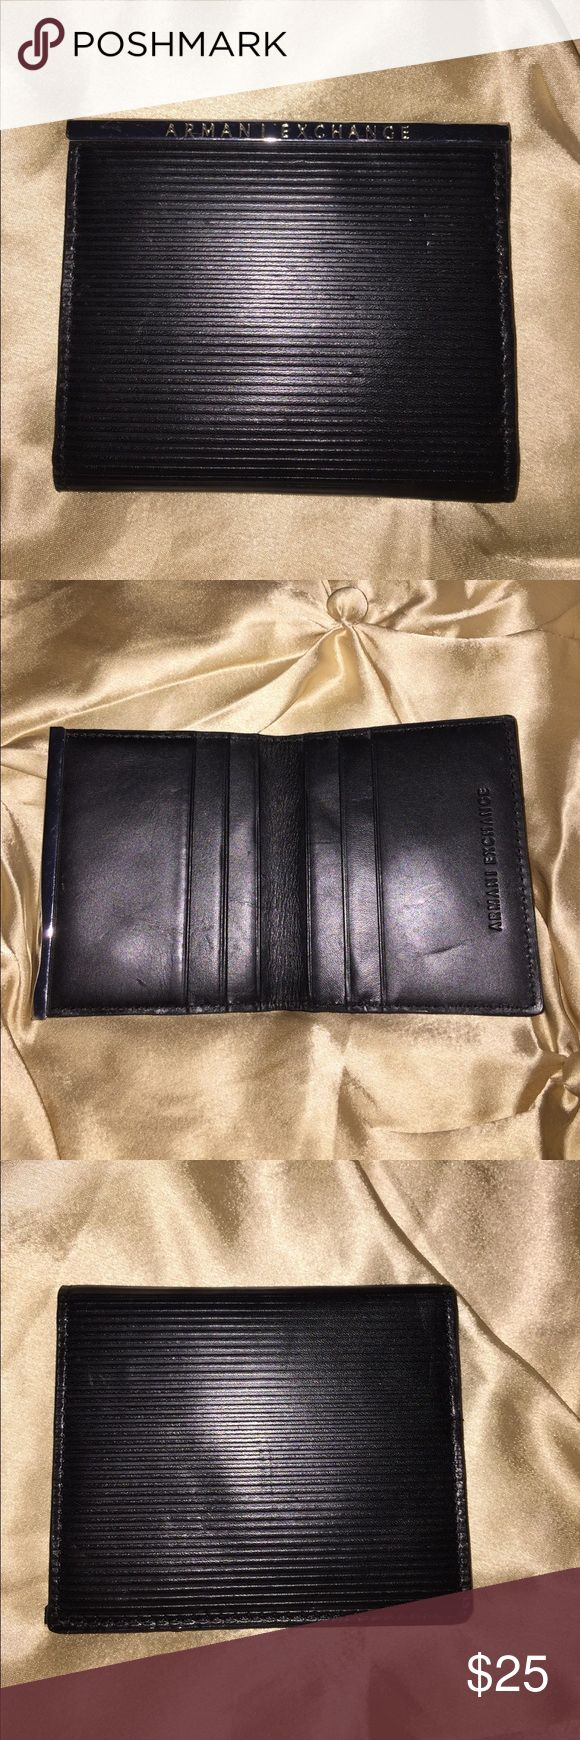 Men's Armani Wallet Good used condition. It has 6 credit card slots. Please use offer button to make an offer. Thank you for looking! Armani Exchange Bags Wallets